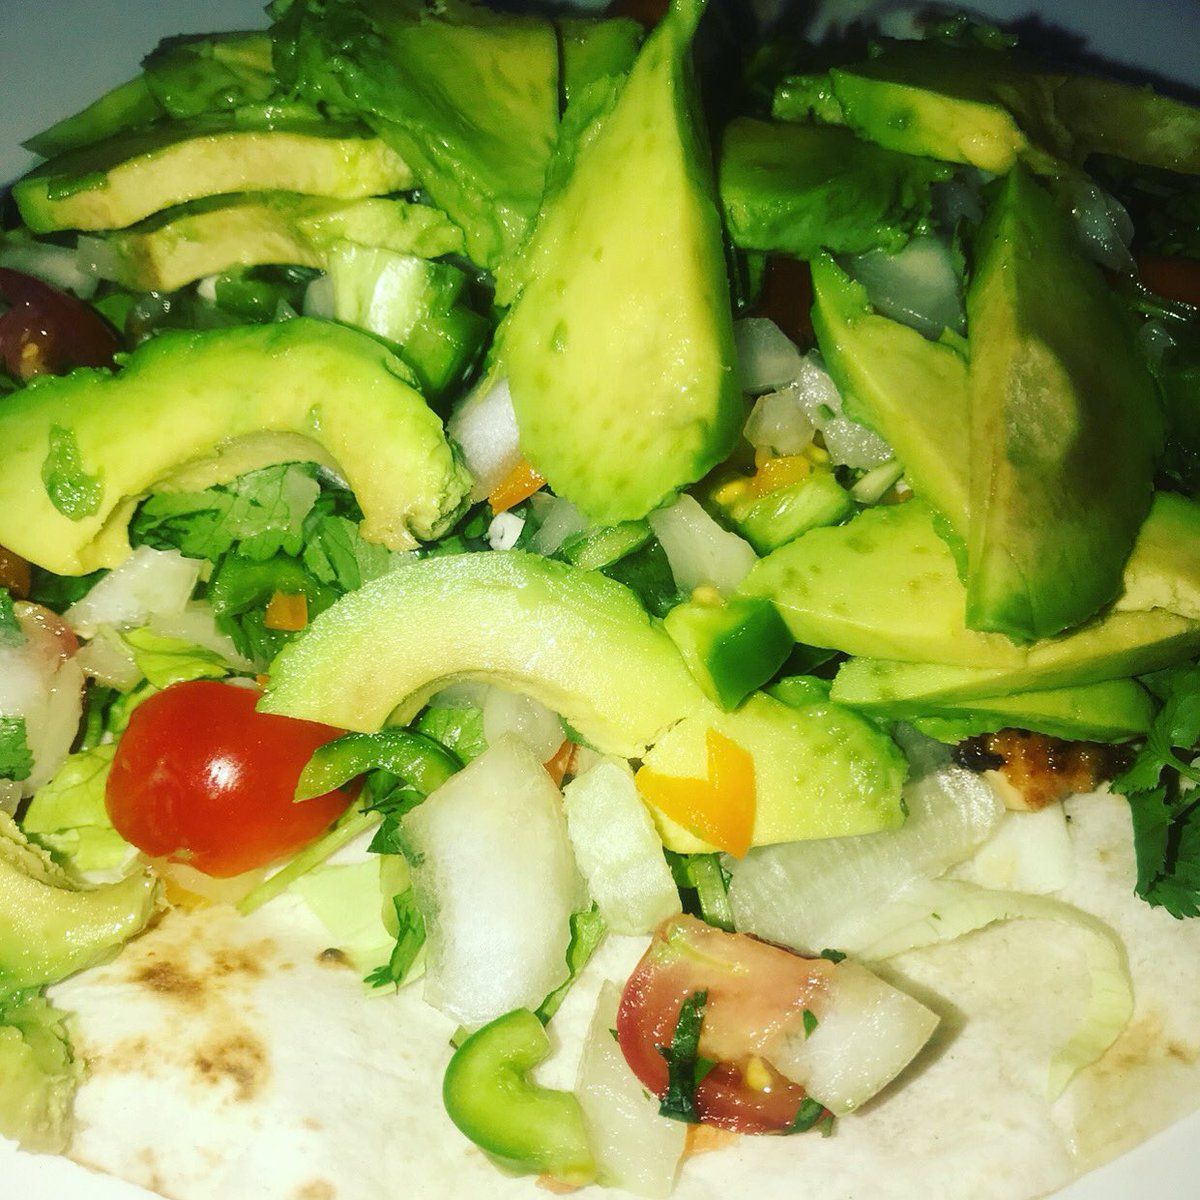 #TacoTuesday #healthy #HealthyFood #healthylifestyle #homeMade #delicious #California #cookingathome #follo4folloback #foodie #FoodForThought #homegrown #RecipeOfTheDaypic.twitter.com/s14h10VPUS